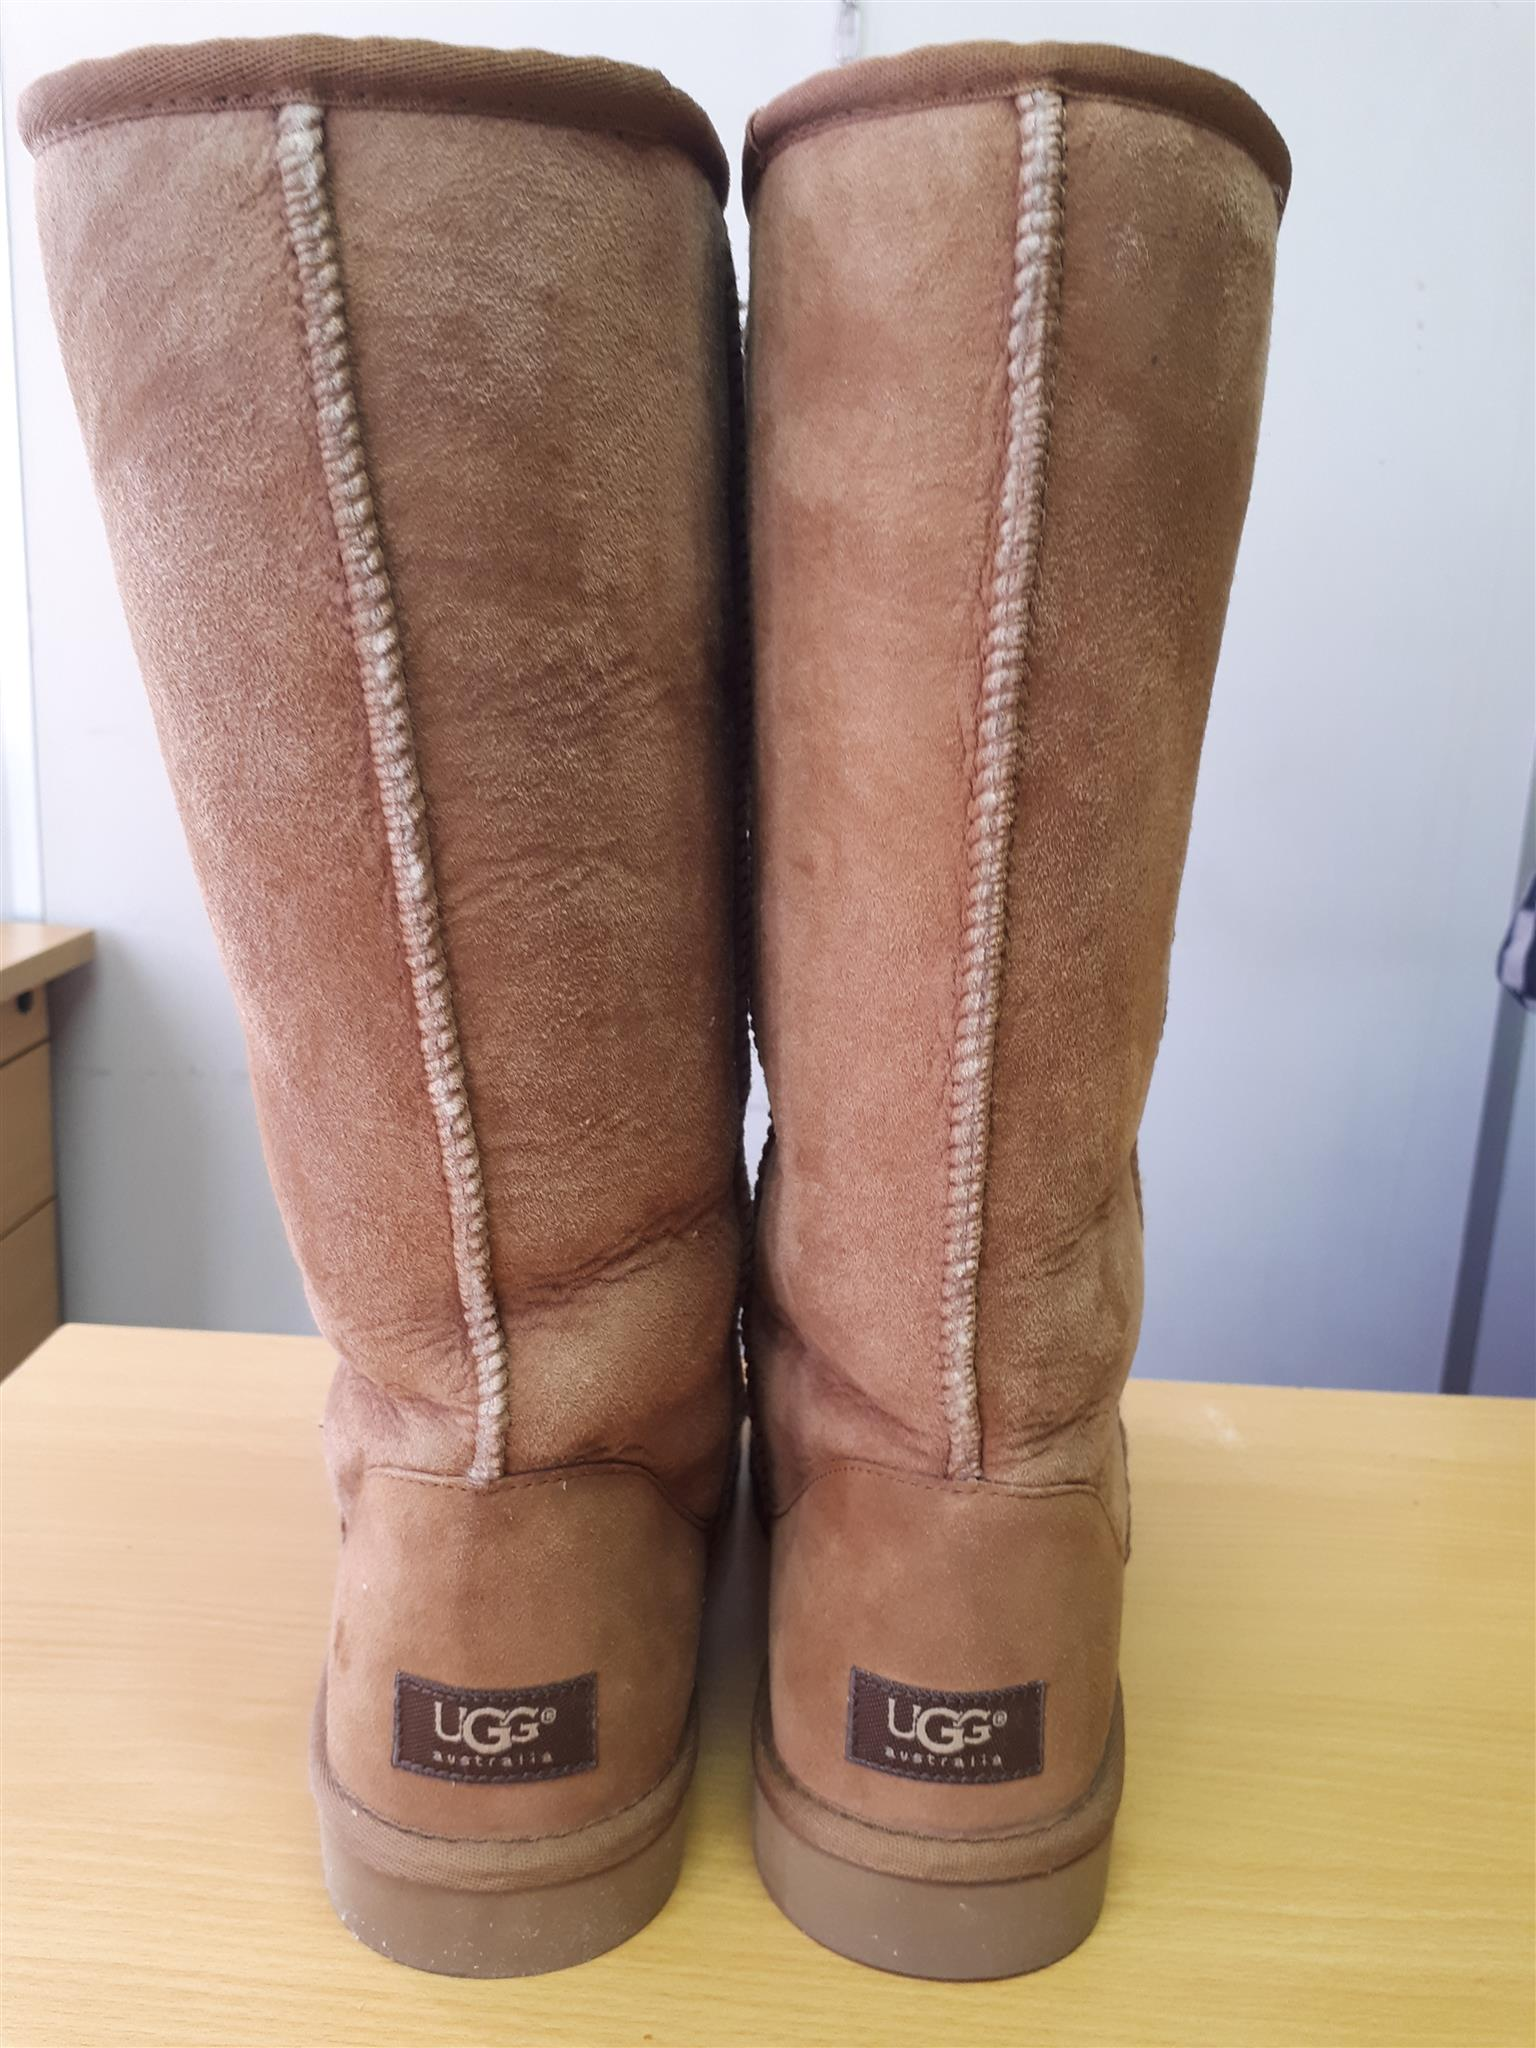 1bc359a6a14 Genuine Australian UGG Boots - Chestnut | Junk Mail